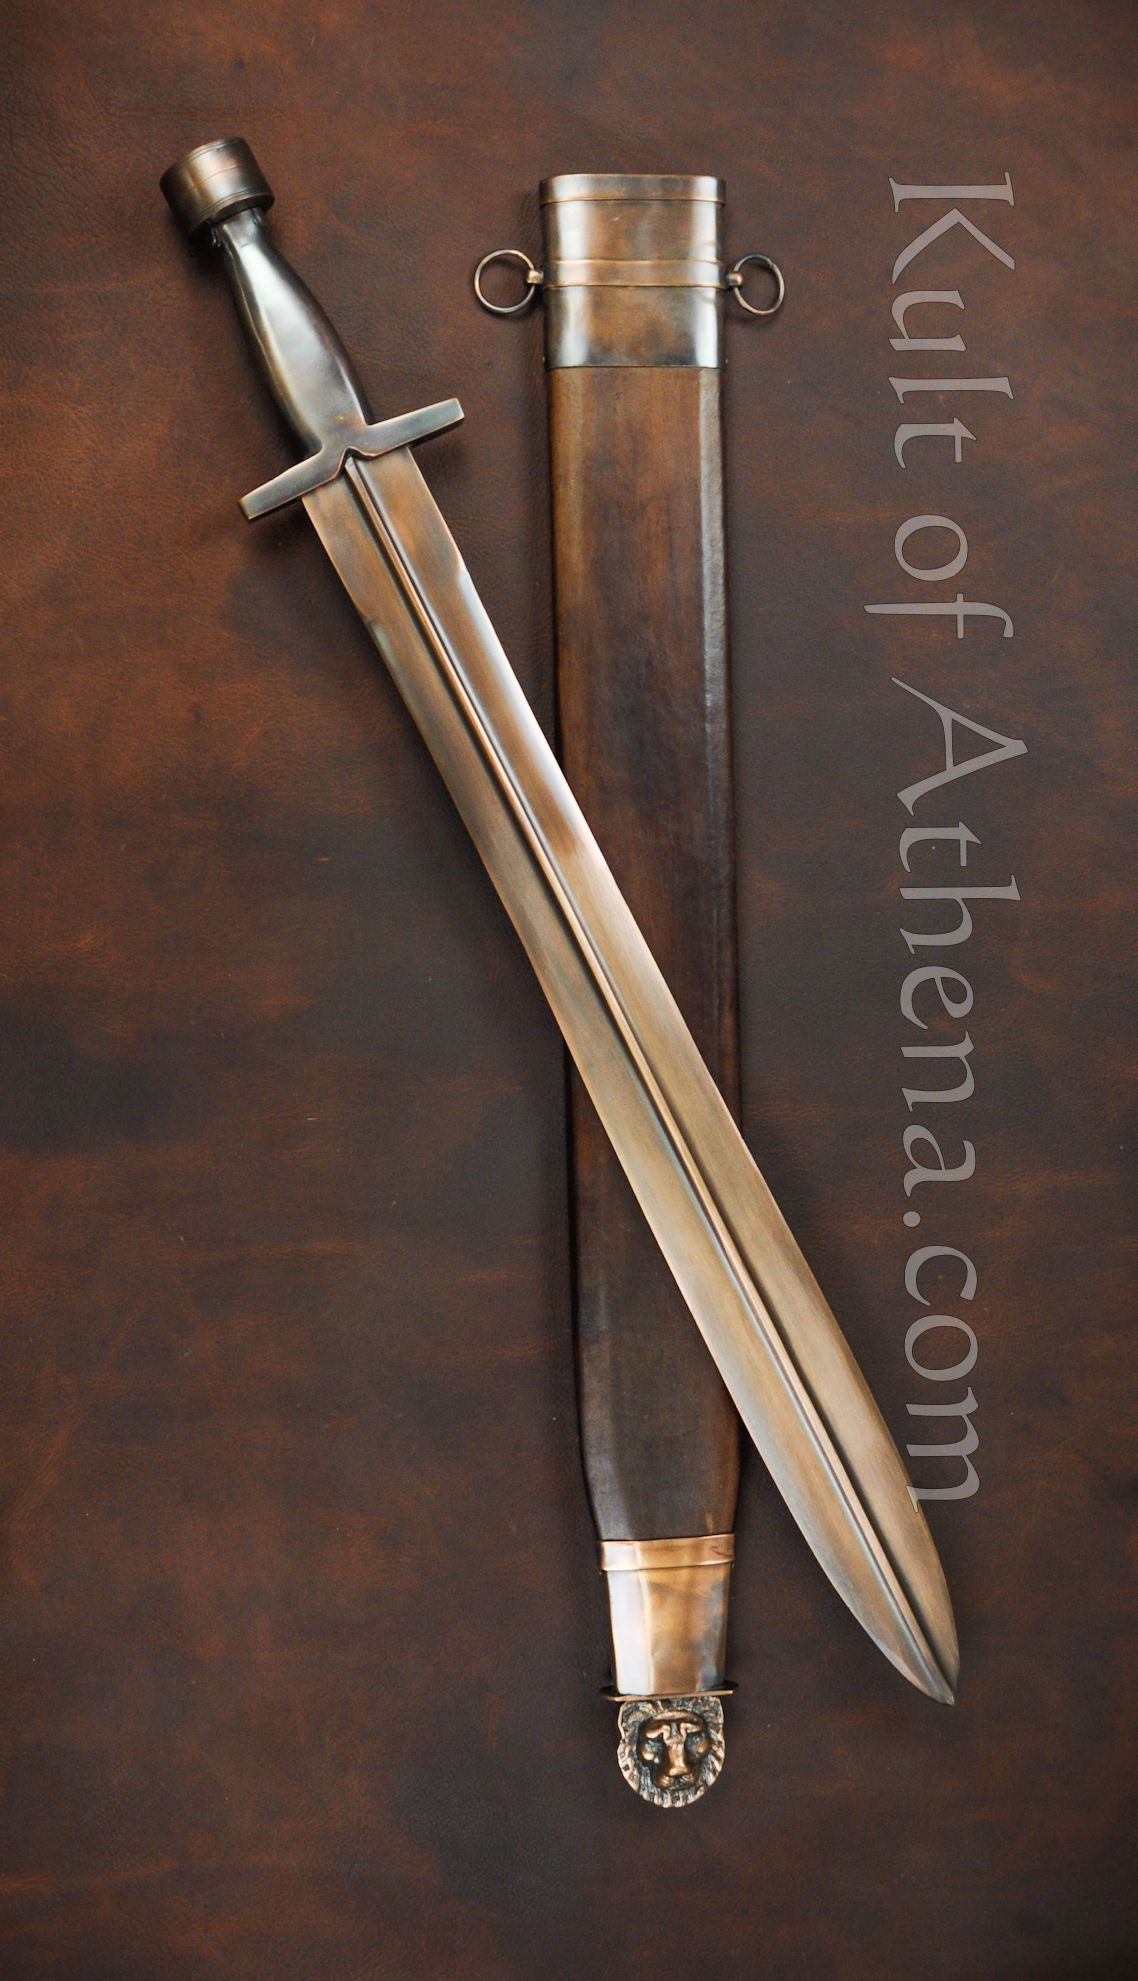 Greek Xiphos Sword with Bronzed Finish, what a beautiful ... Ancient Greek Sword Xiphos